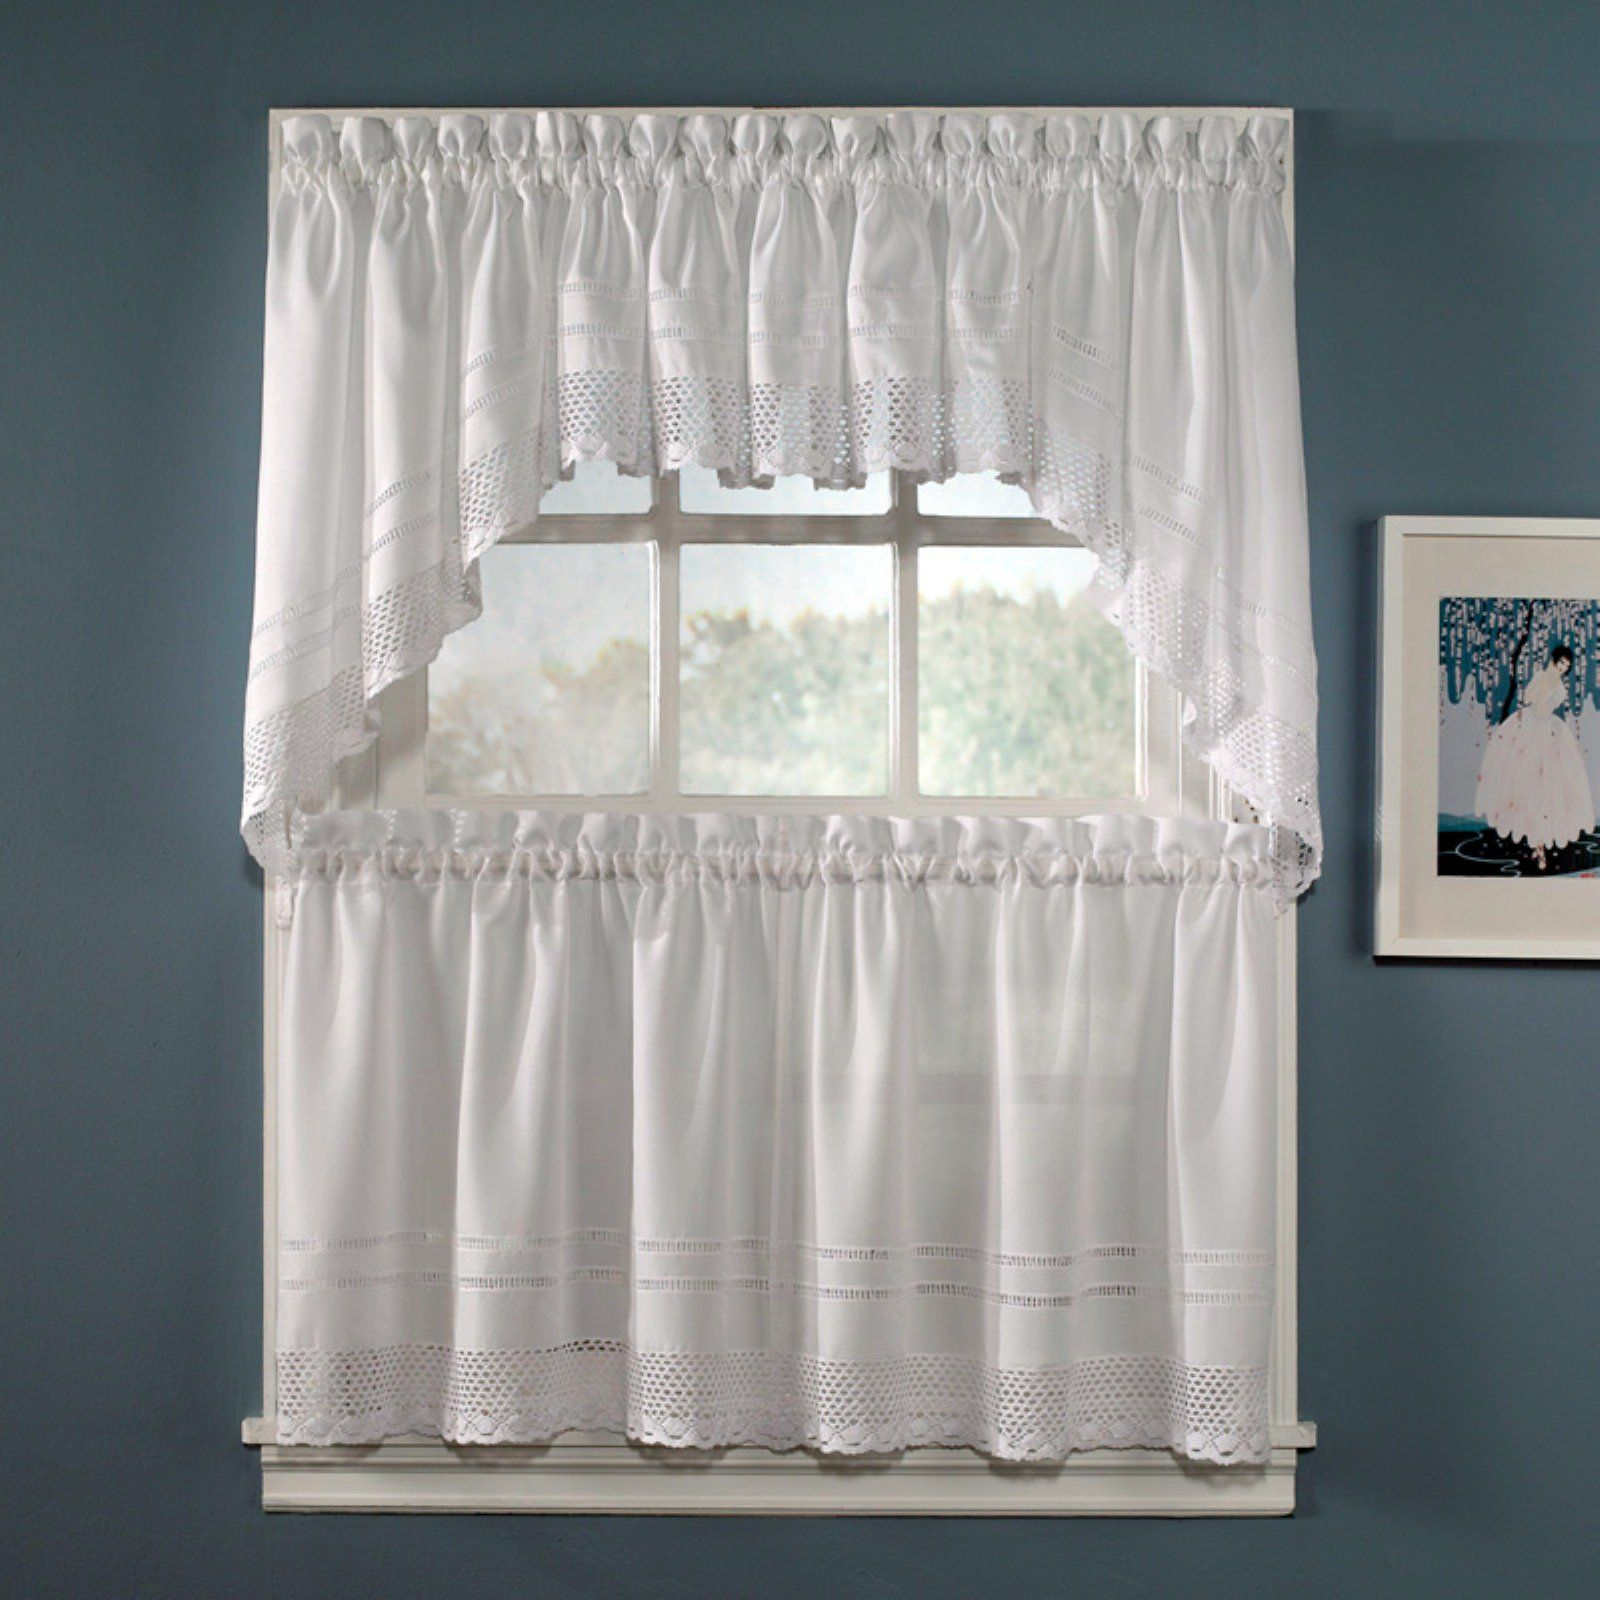 Chf Industries Crochet Valance In 2020 Tier Curtains Window Swags Simple Curtains